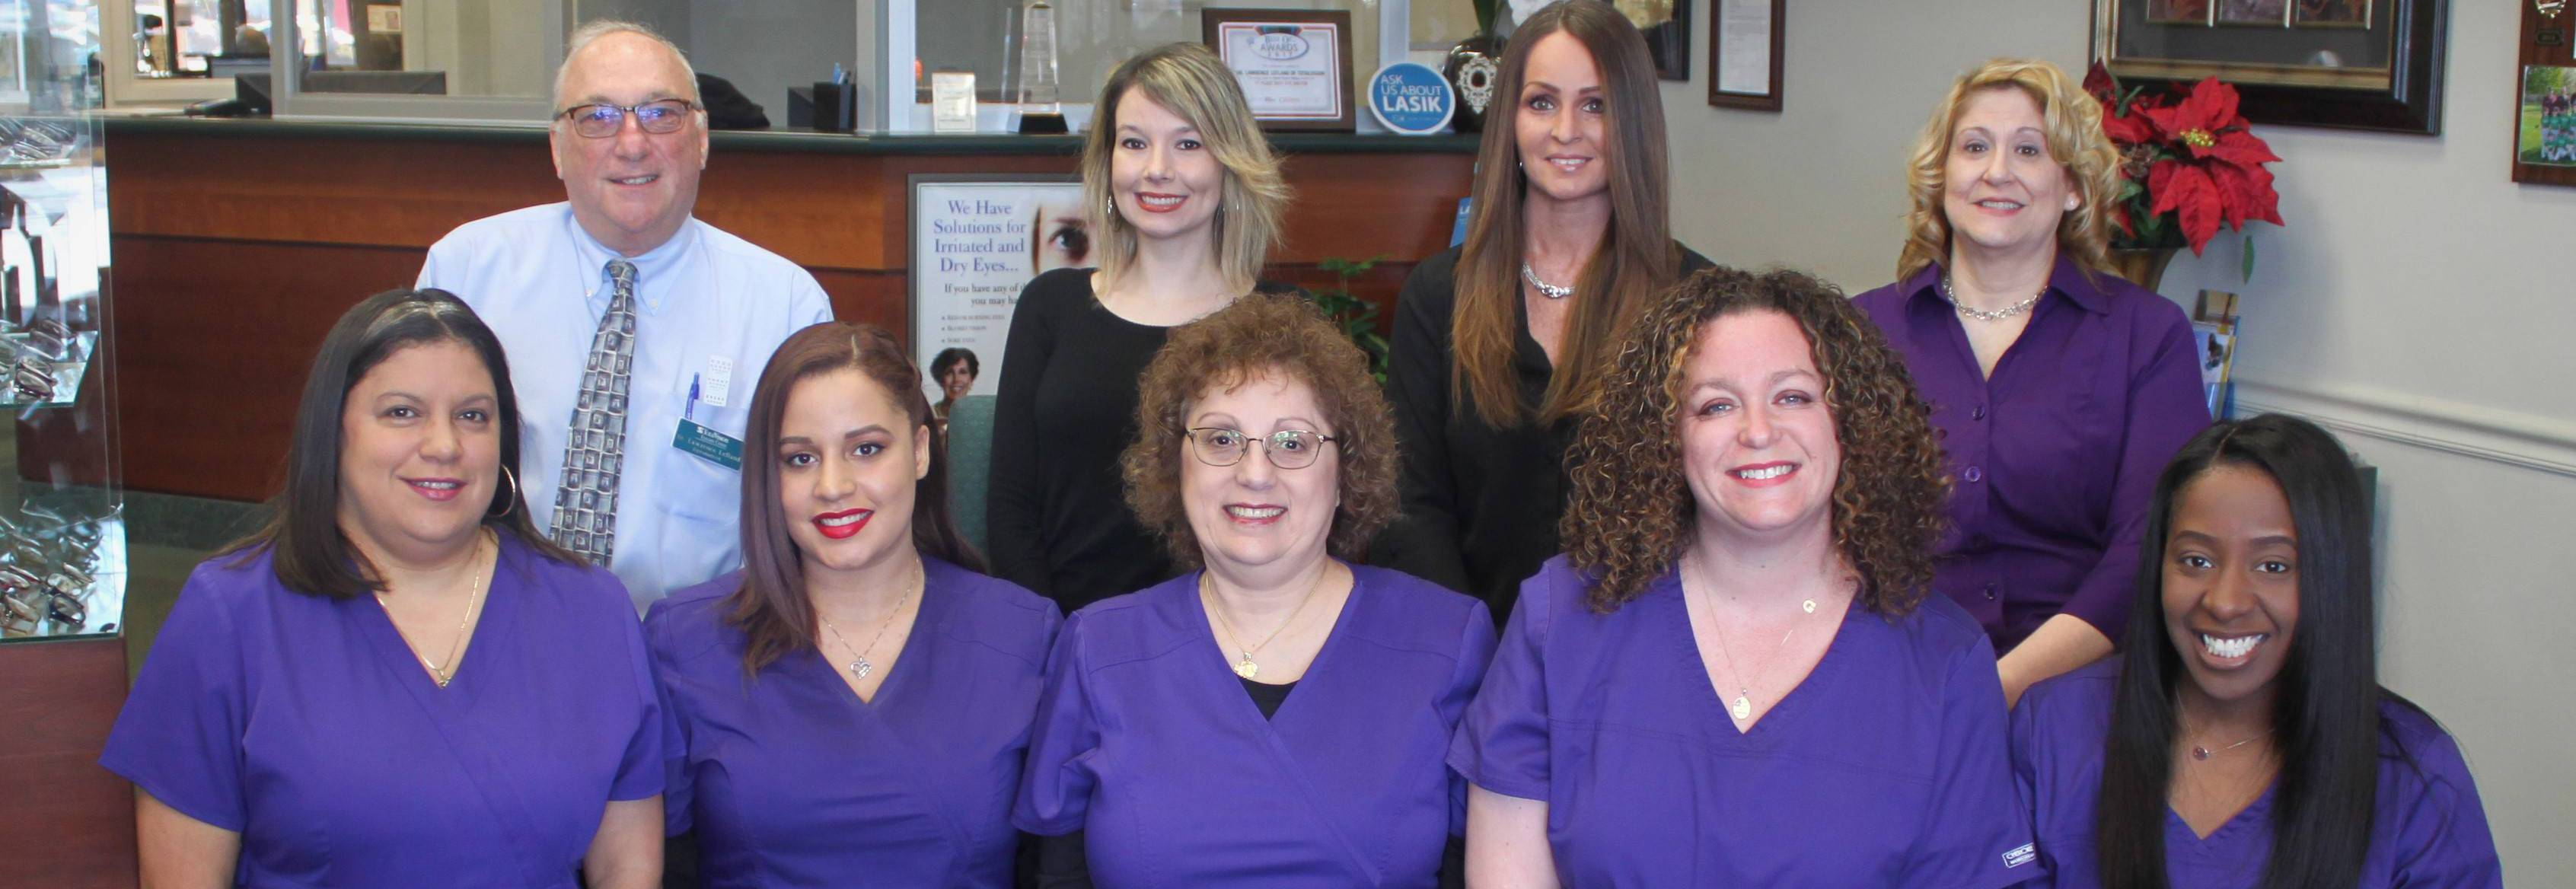 optometrist & eye exam, optical staff at TotalVision Eyecare Center in Wallingford Connecticut